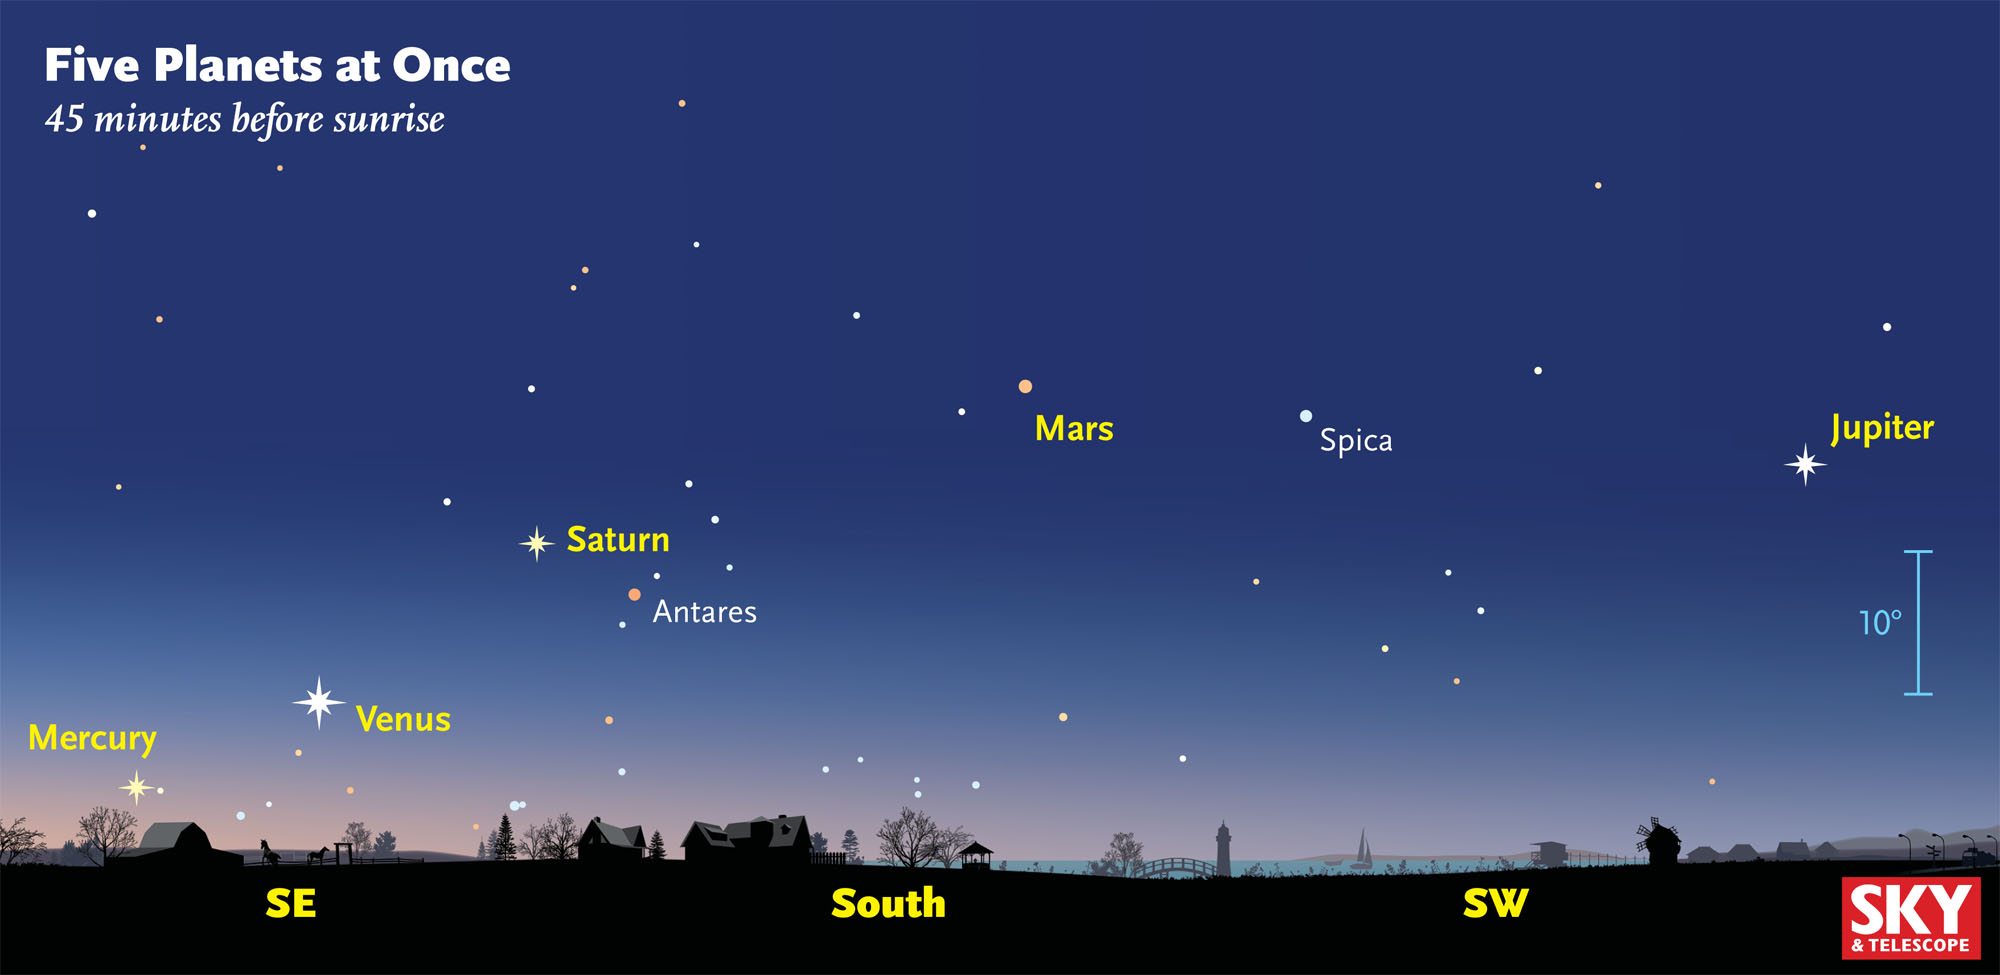 You Can See 5 Bright Planets in the Night Sky: Here's How